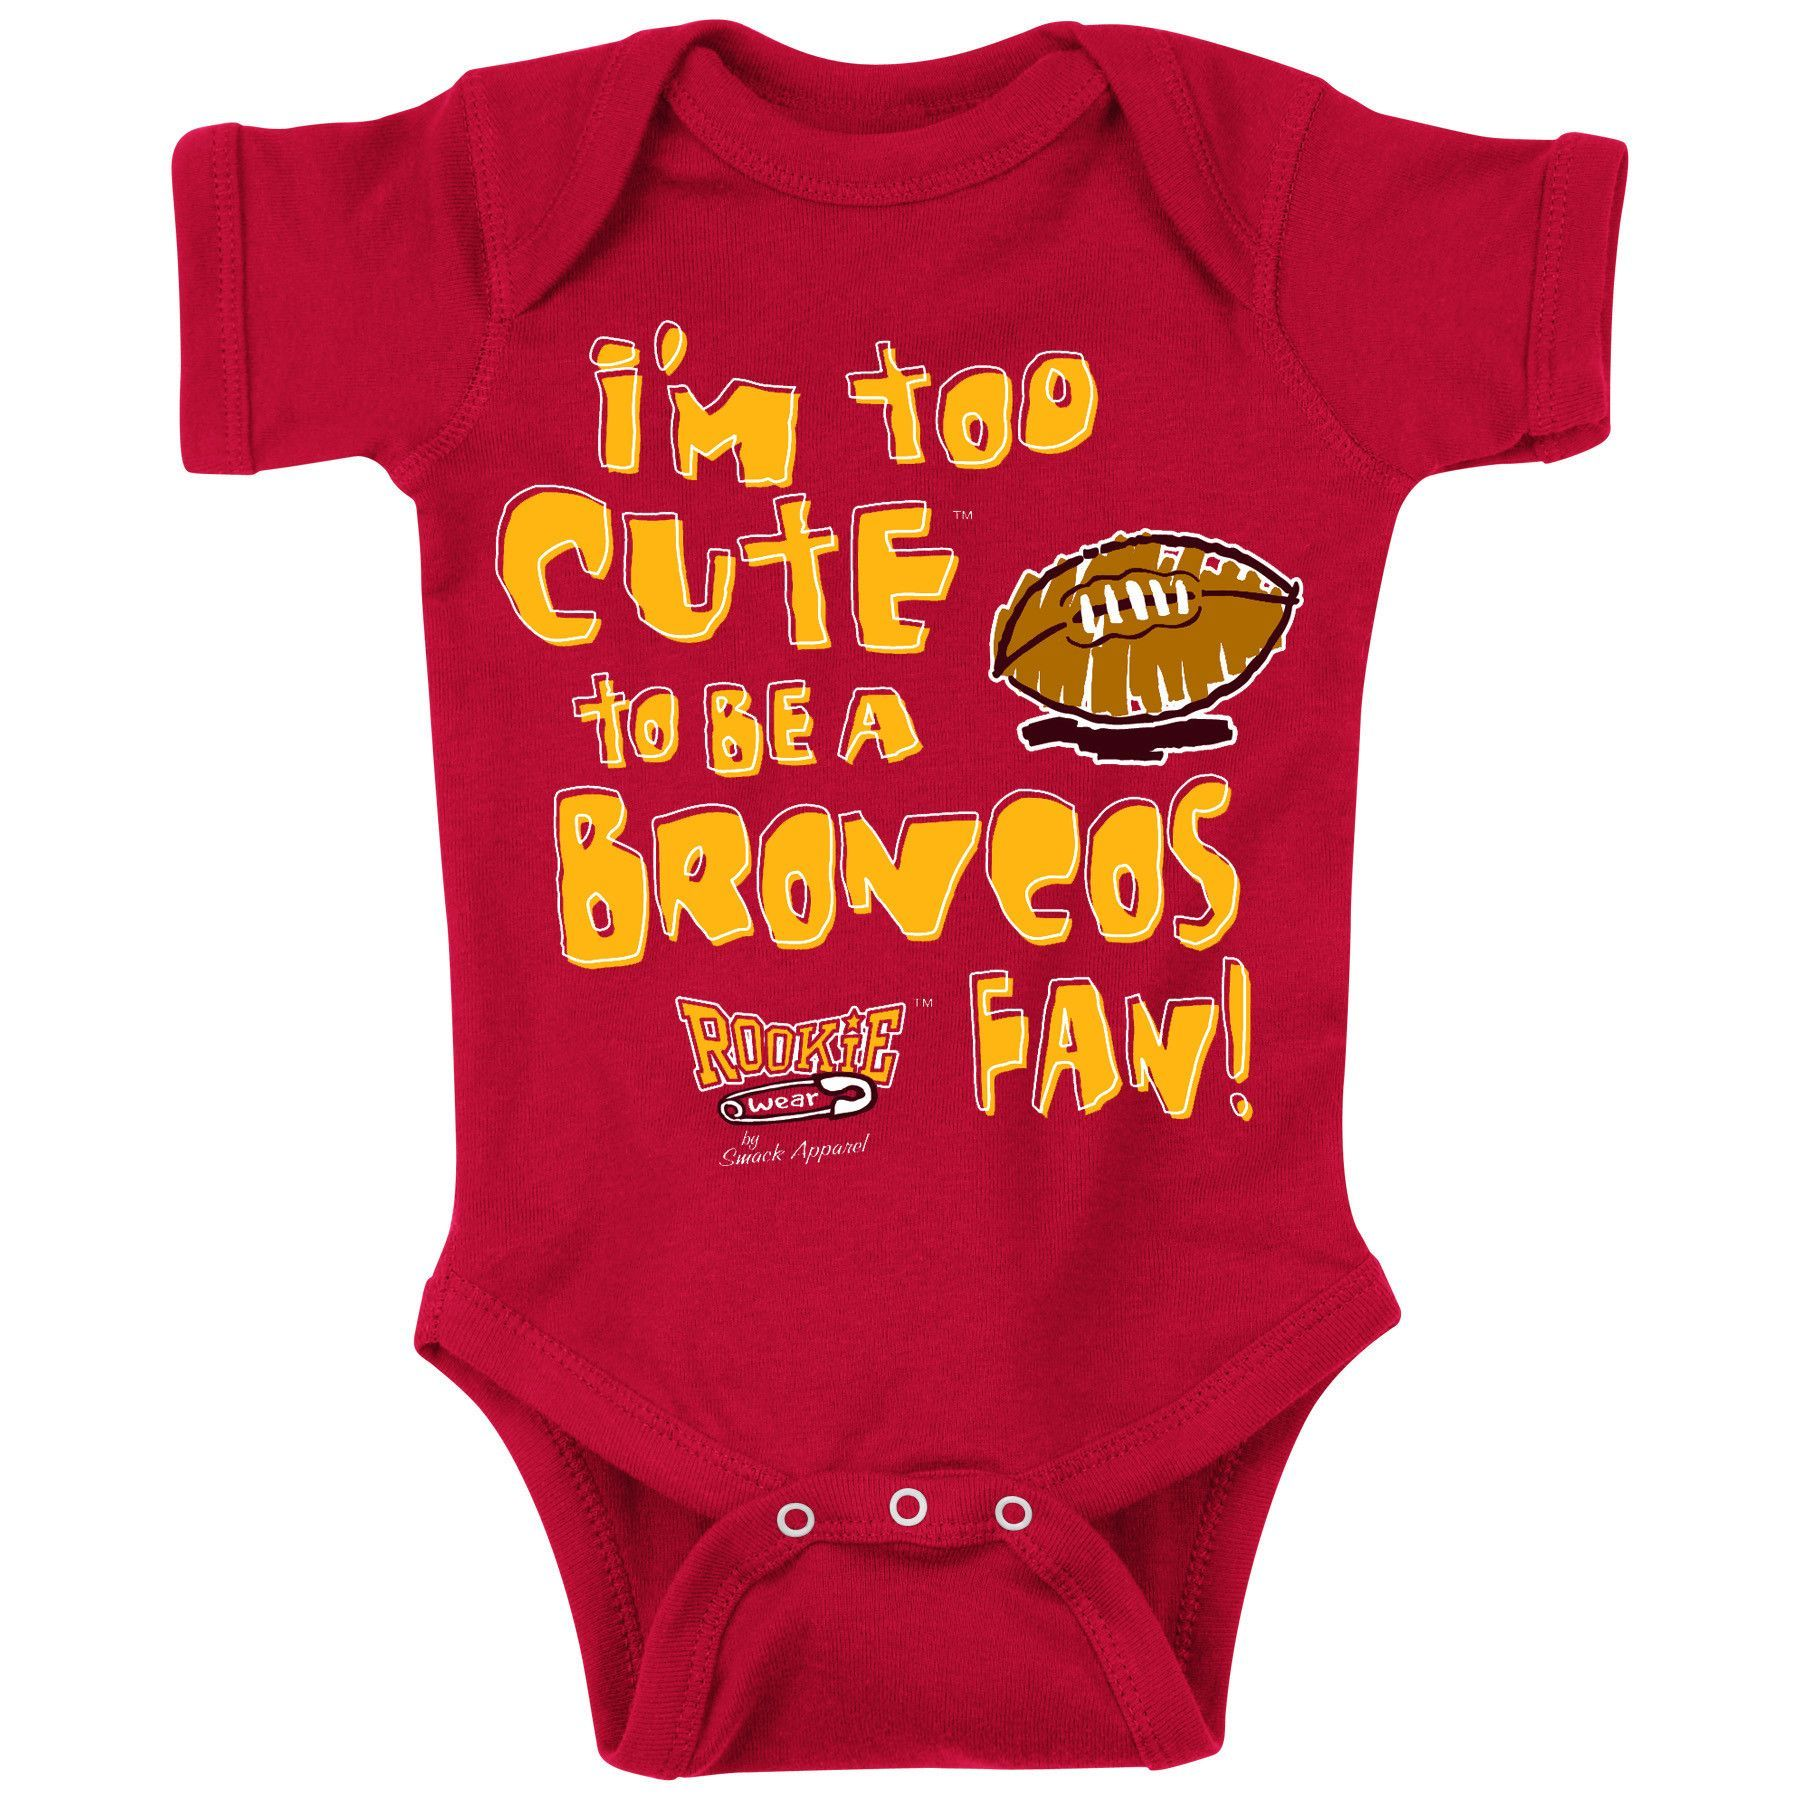 Kansas City Chiefs Fans Too Cute Anti Denver esie NB 18M